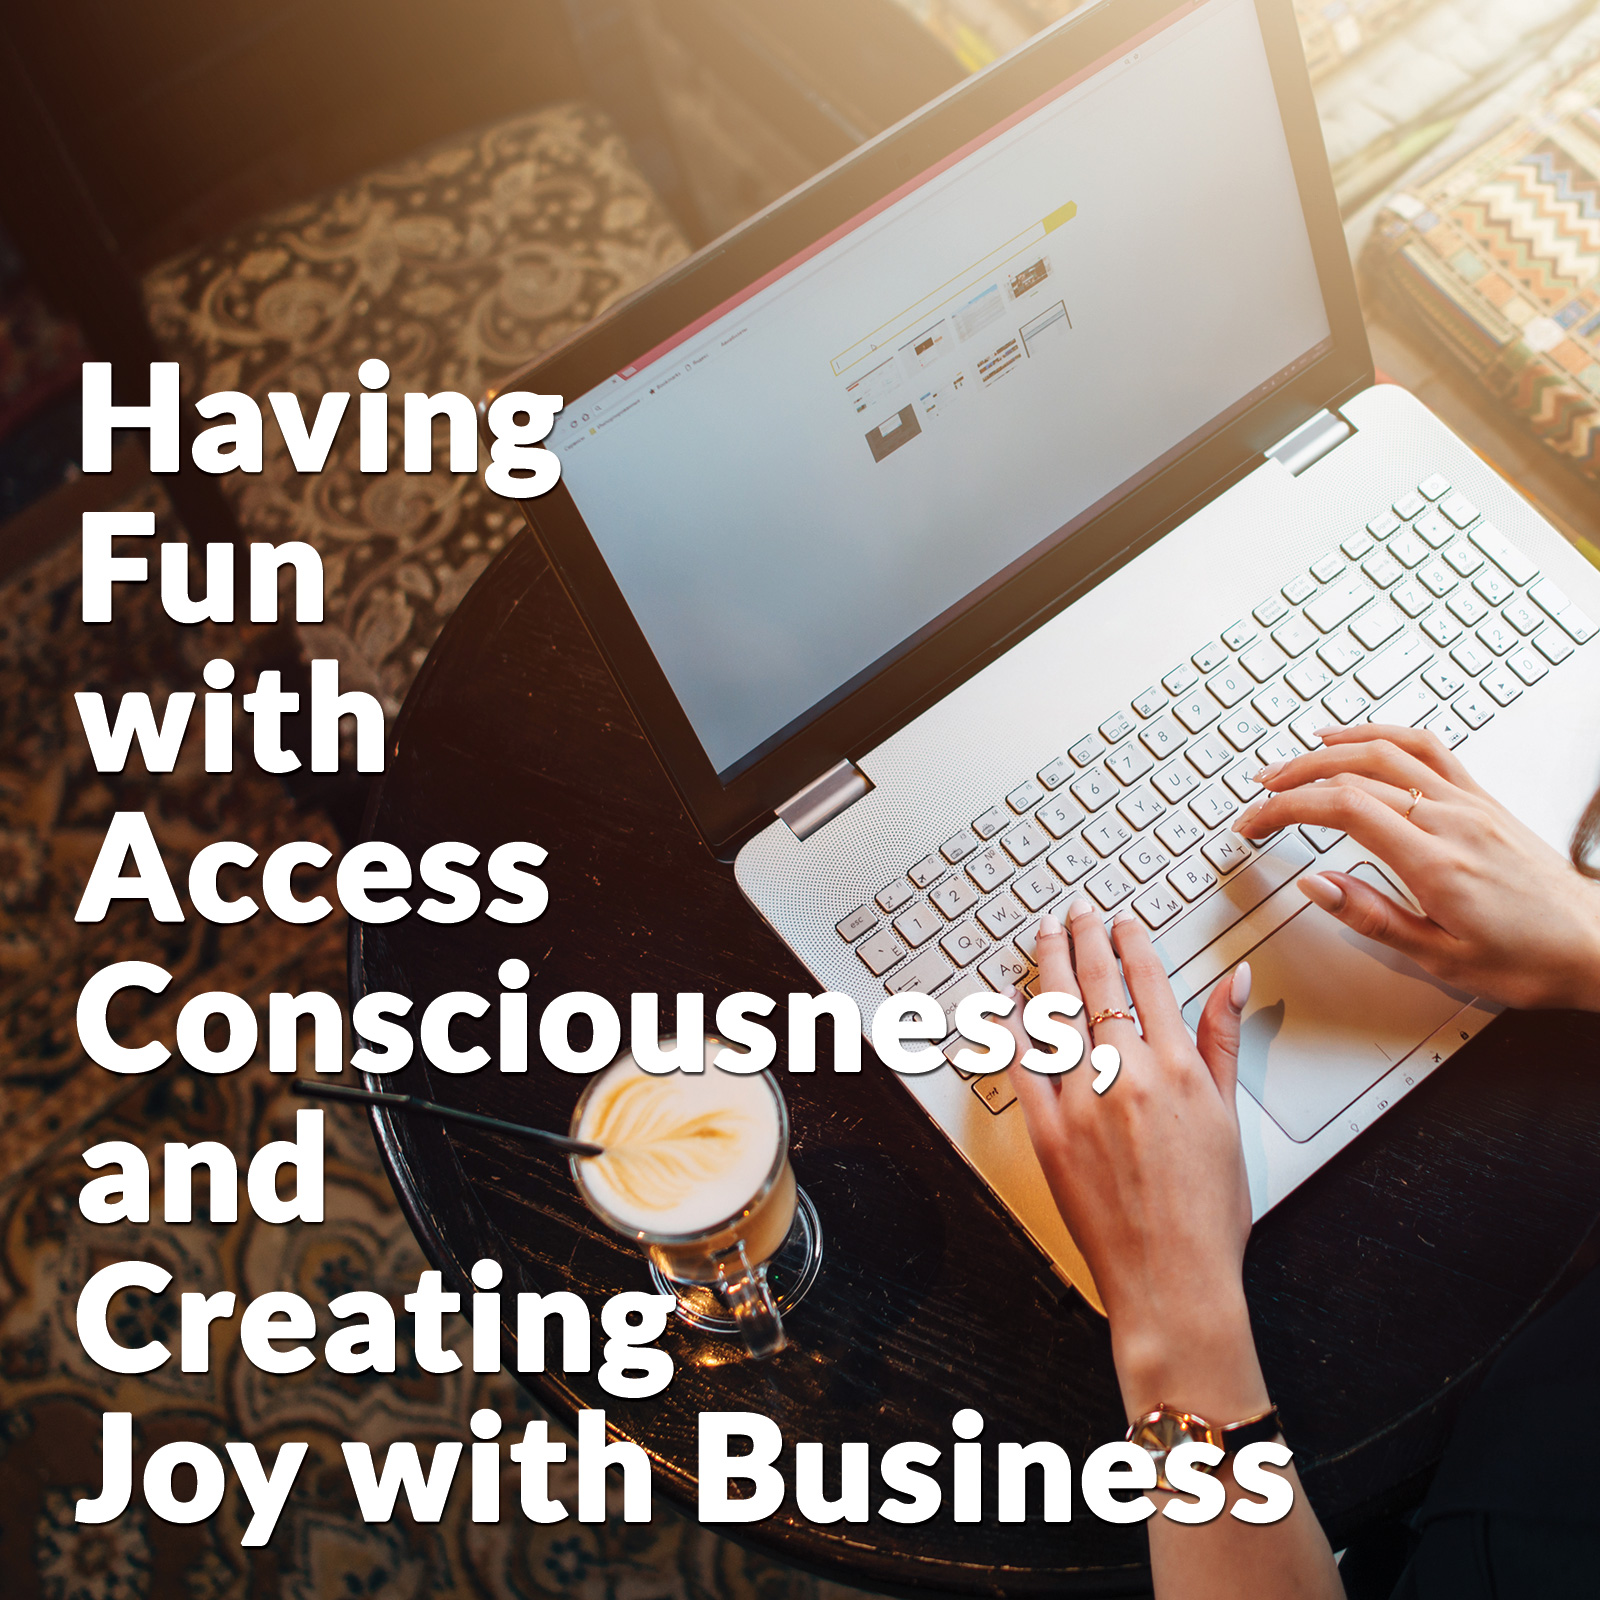 Having Fun with Access Consciousness, and Creating Joy with Business